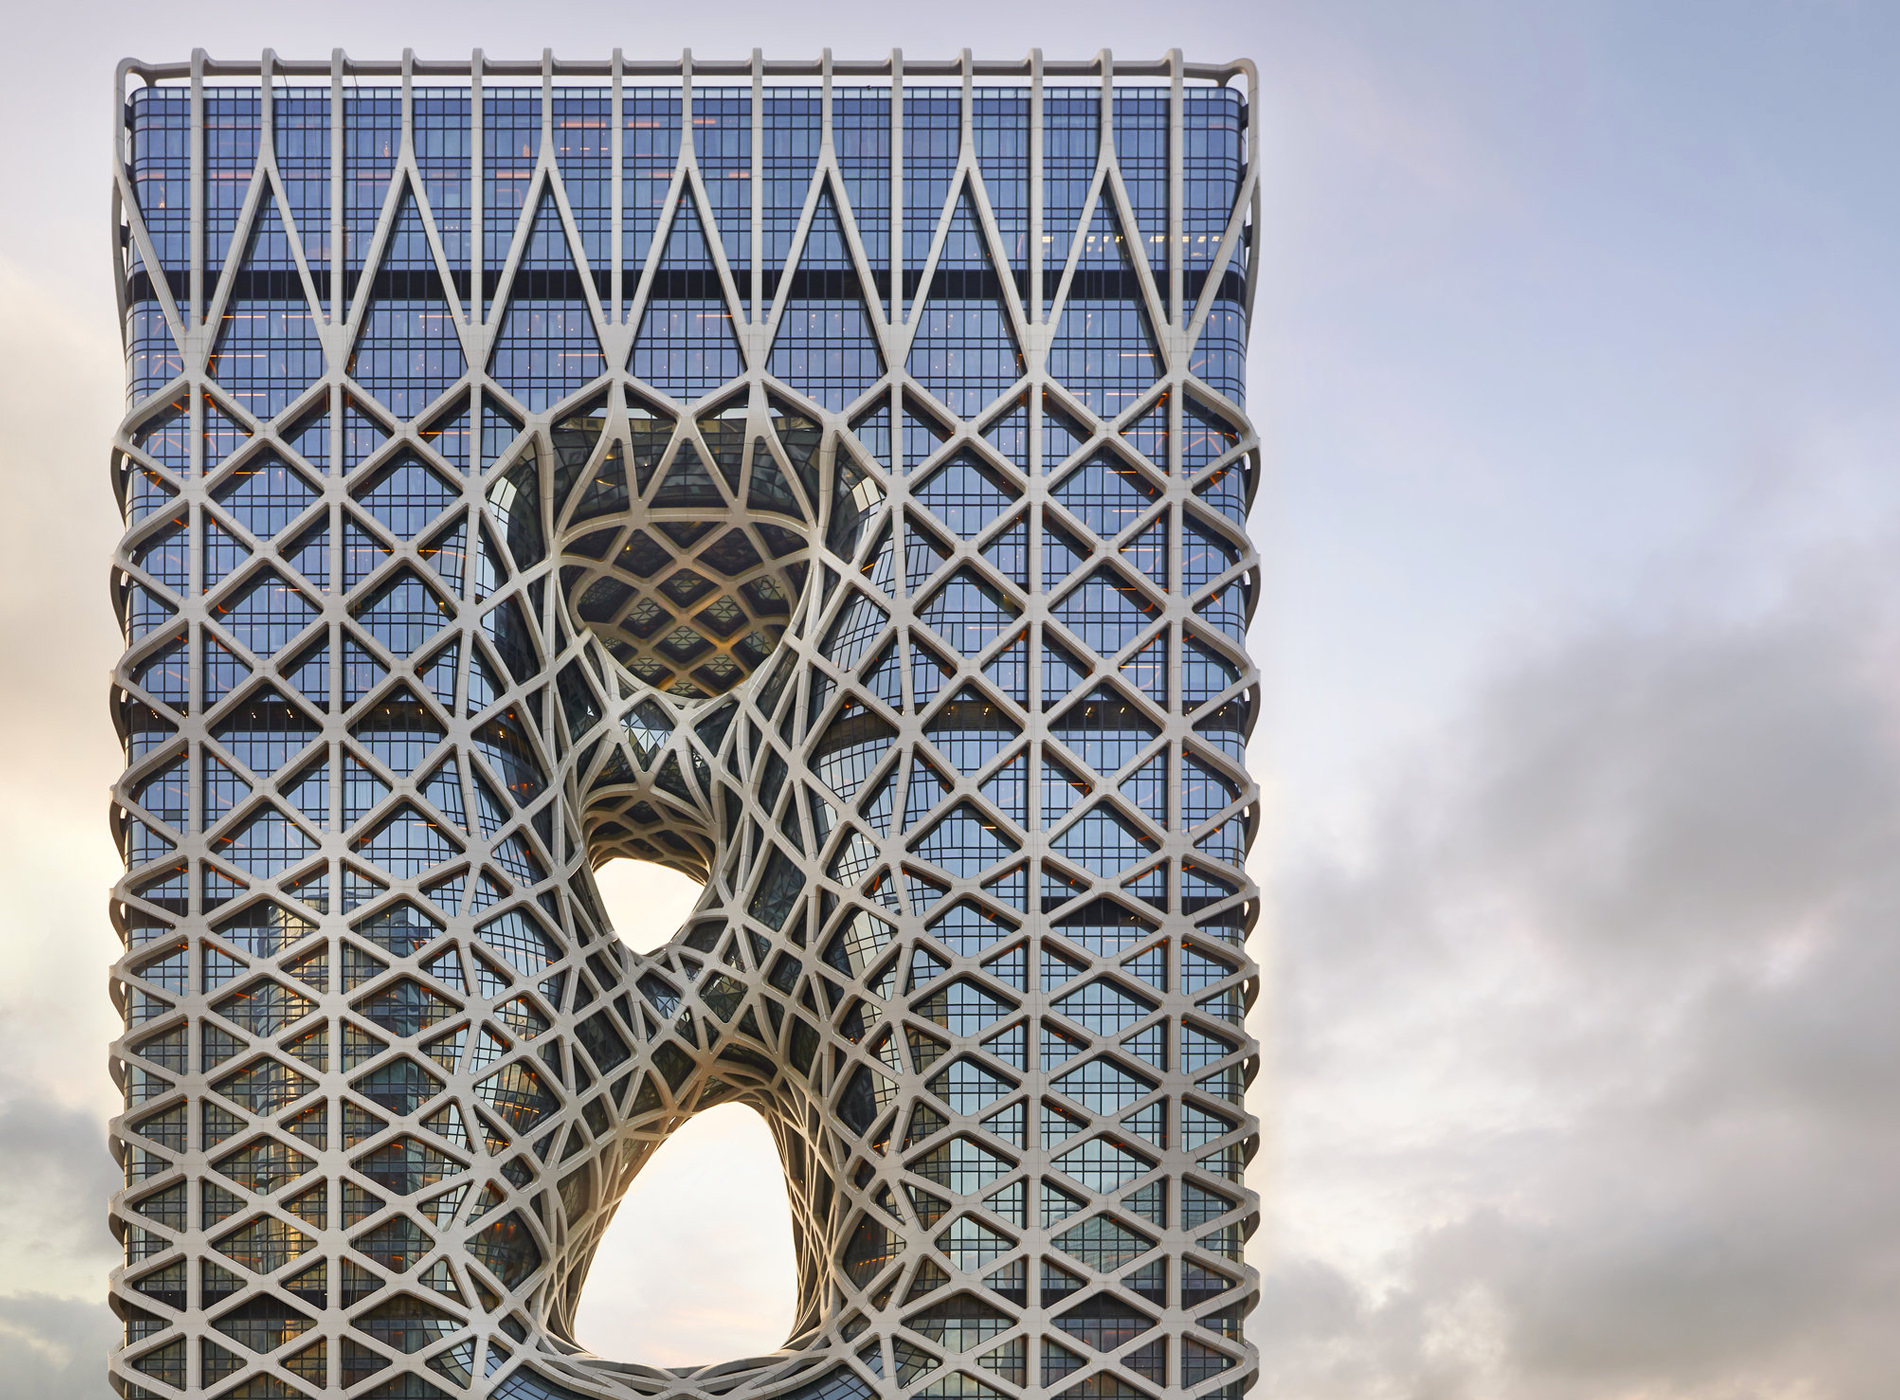 City Guide Macao Chine Morpheus Hotel Zaha Hadid Architects